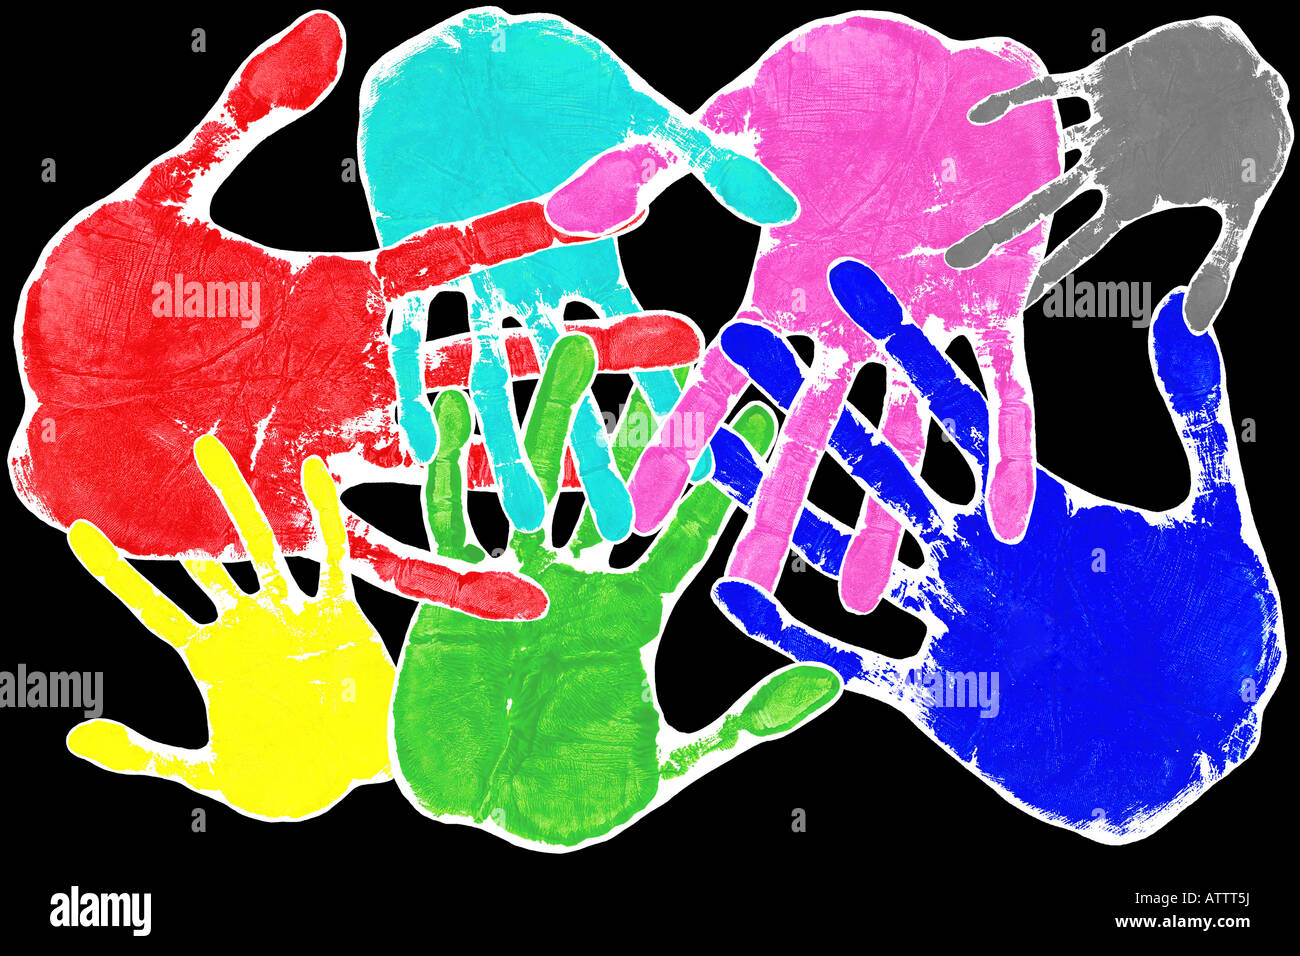 Hand prints in many colours with interlocking fingers on a black background - Stock Image